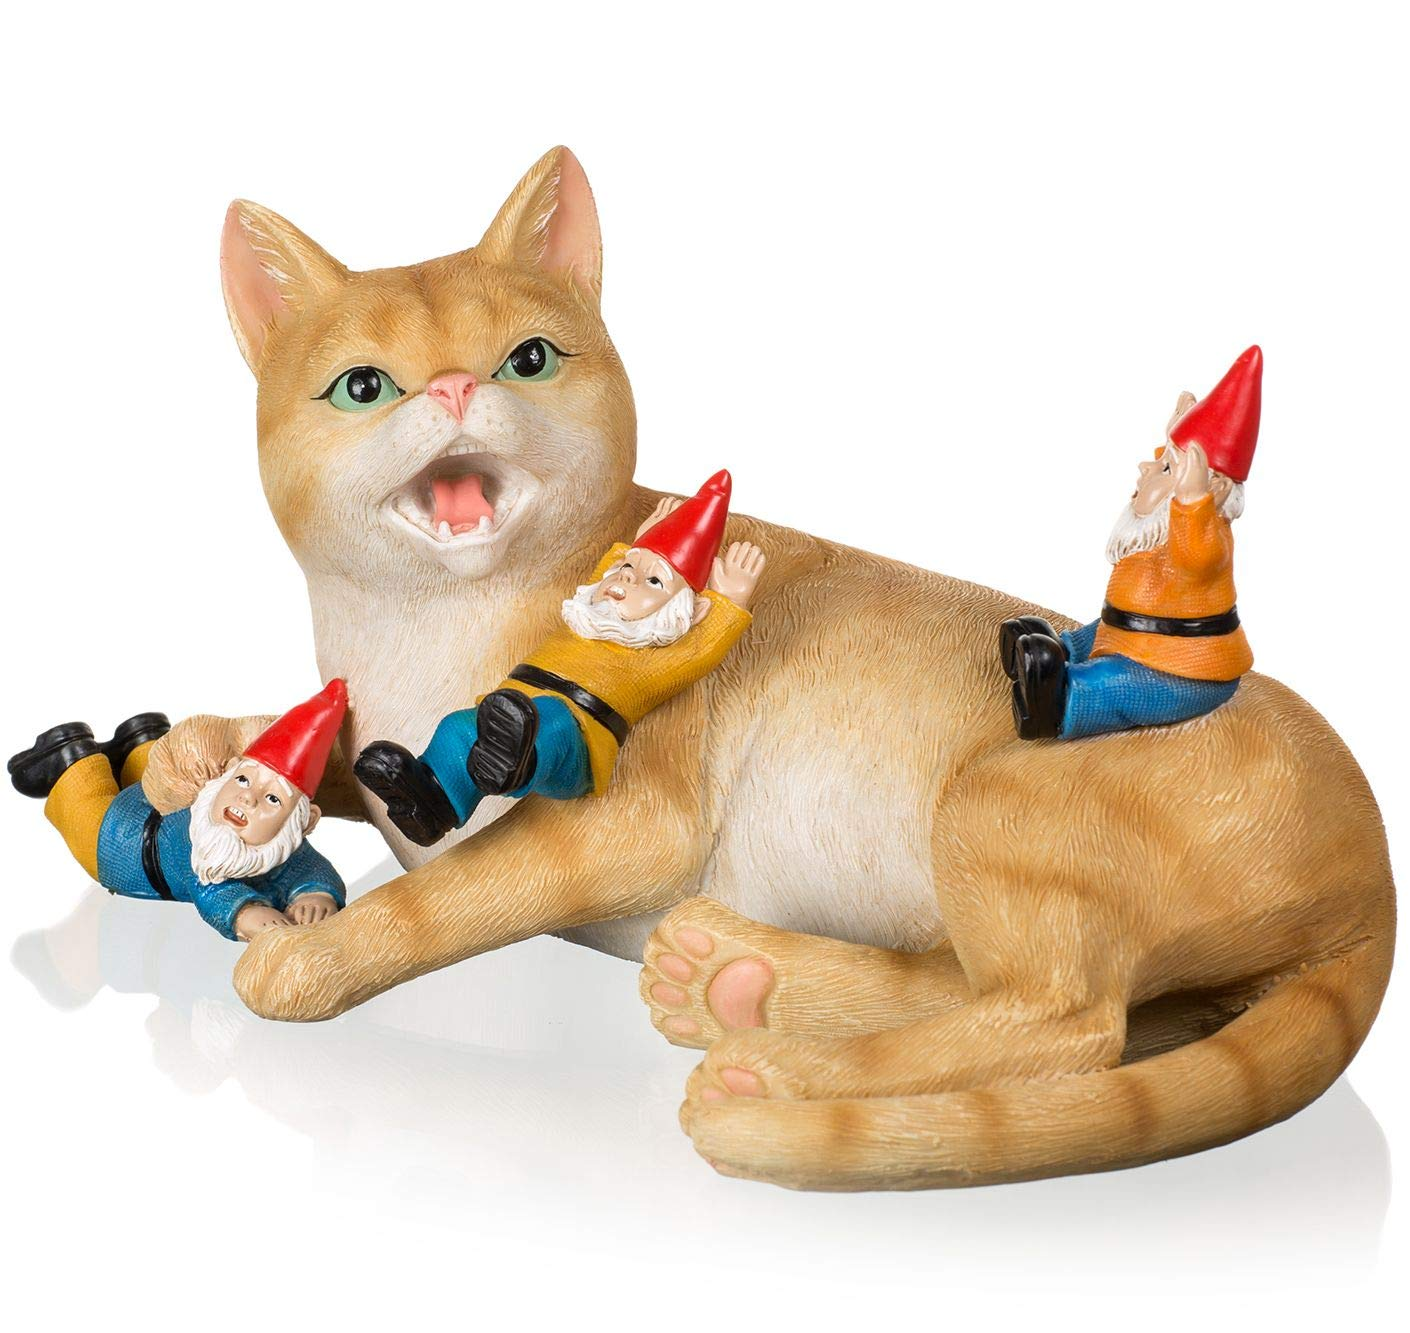 Joykick Cat with Gnomes Statue - 10 x 6.7 Inches Hand Painted Miniature Garden Figurine - Ideal for Indoor and Outdoor Use - Funny Gift for Home or Lawn Decor